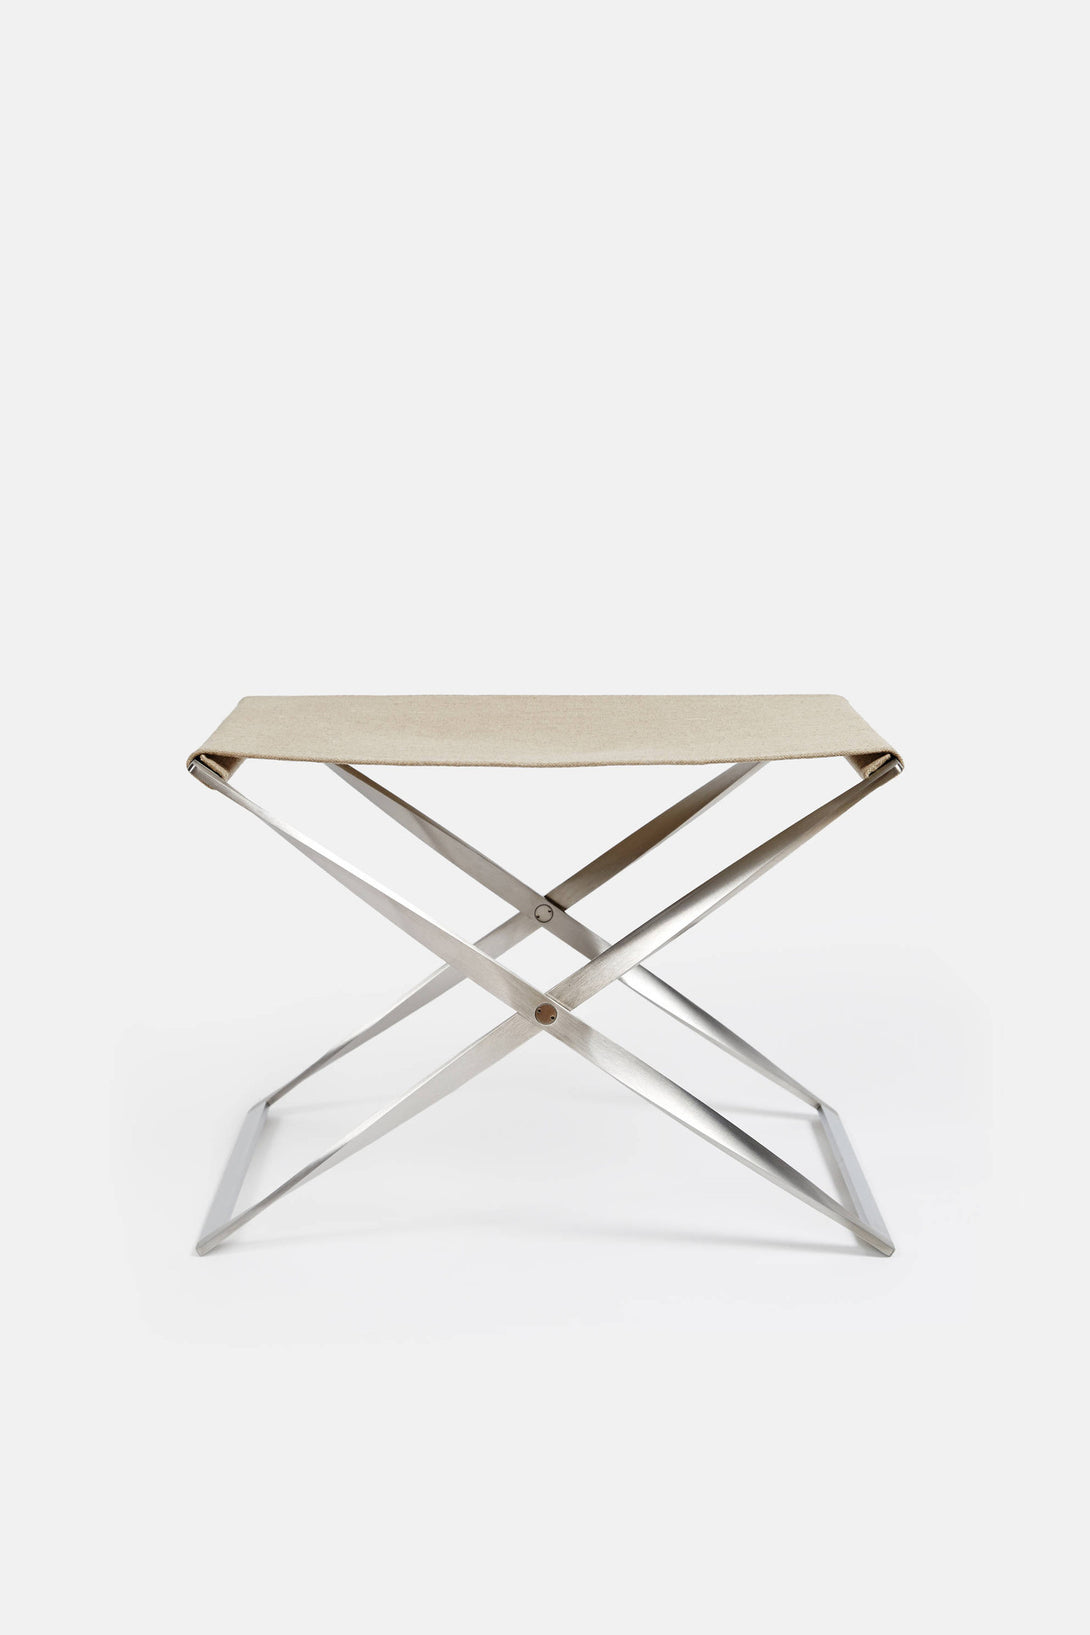 PK91 Folding Stool Satin Brushed Stainless Steel Canvas – The Line